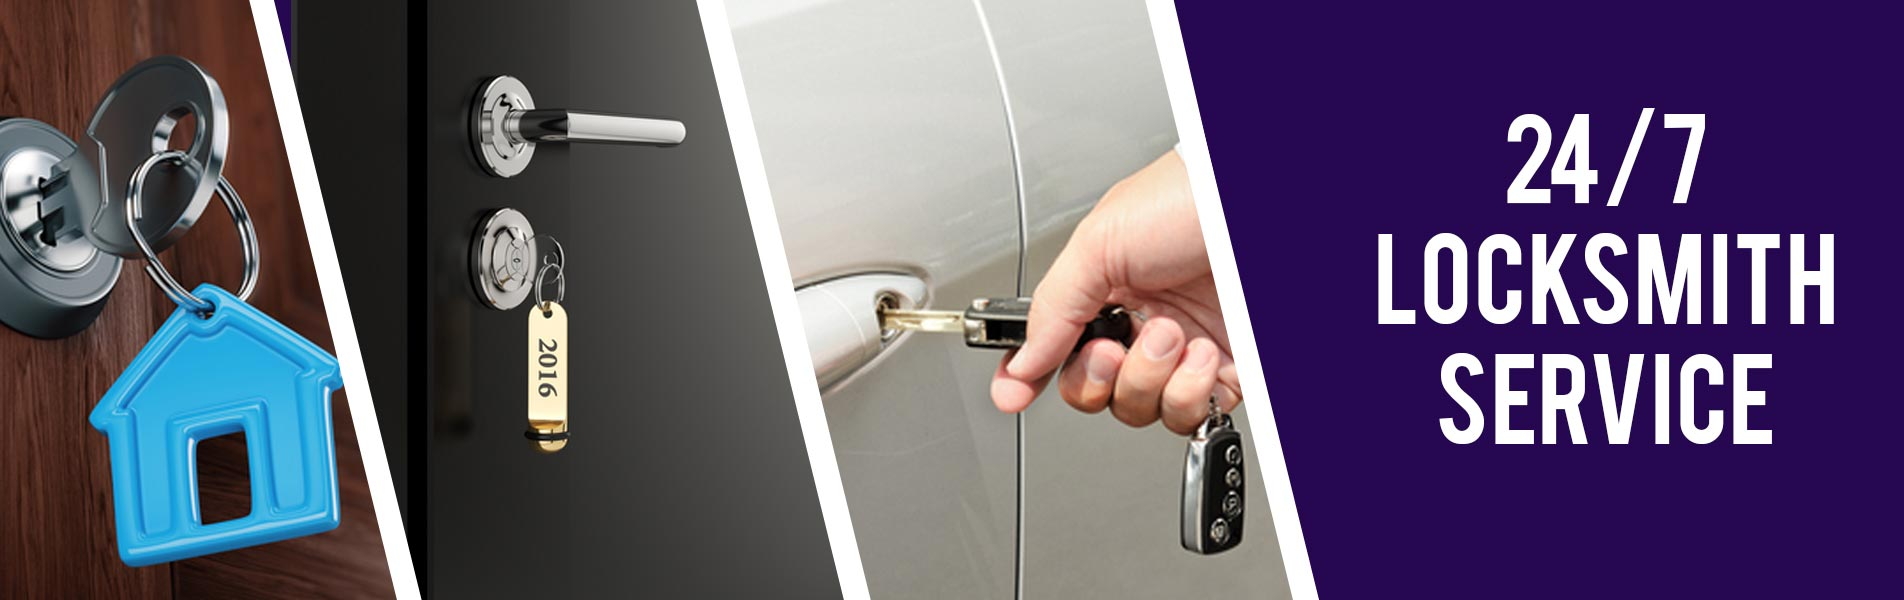 Dallas Advantage Locksmith, Dallas, TX 469-893-4305